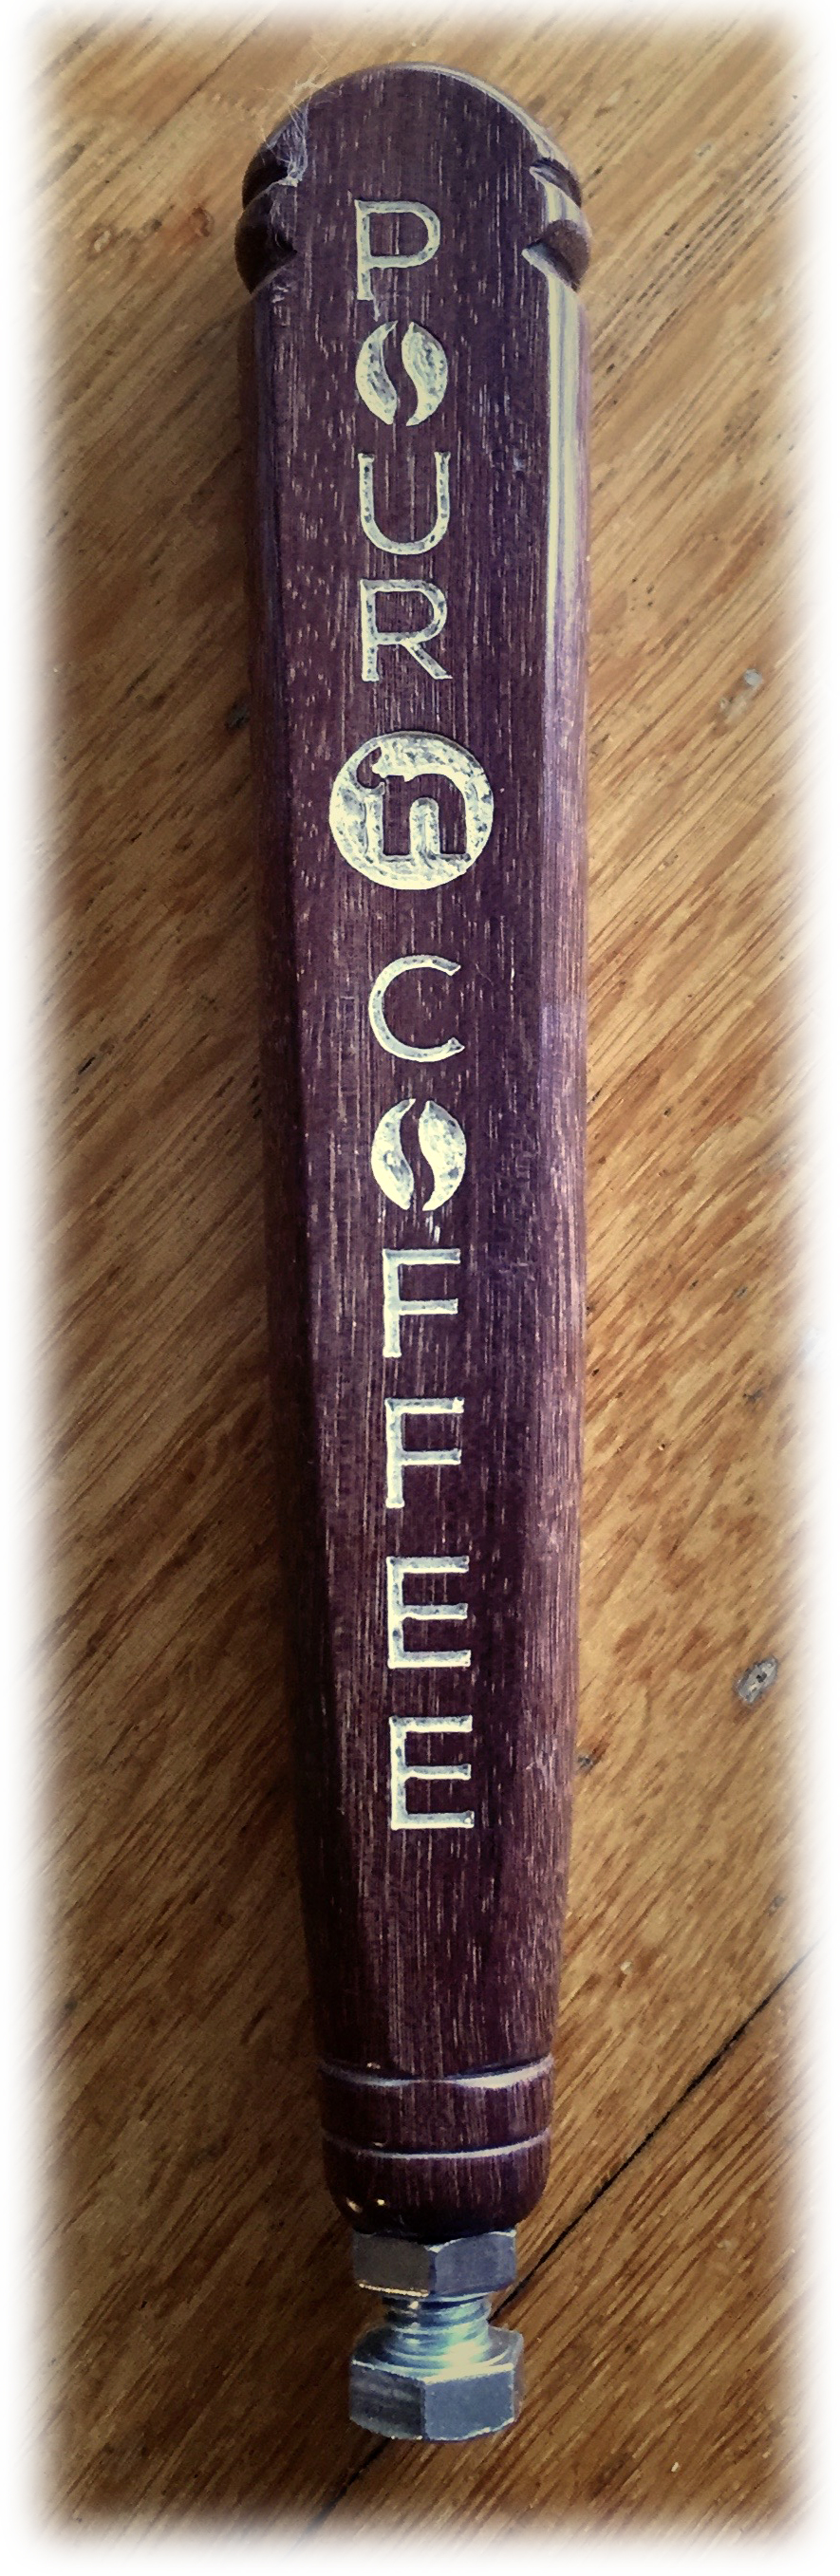 "Purpleheart<p><font size=""-4""><a href=""http://www.pourncoffee.com/"">Pour 'n Coffee</a></font></p>"